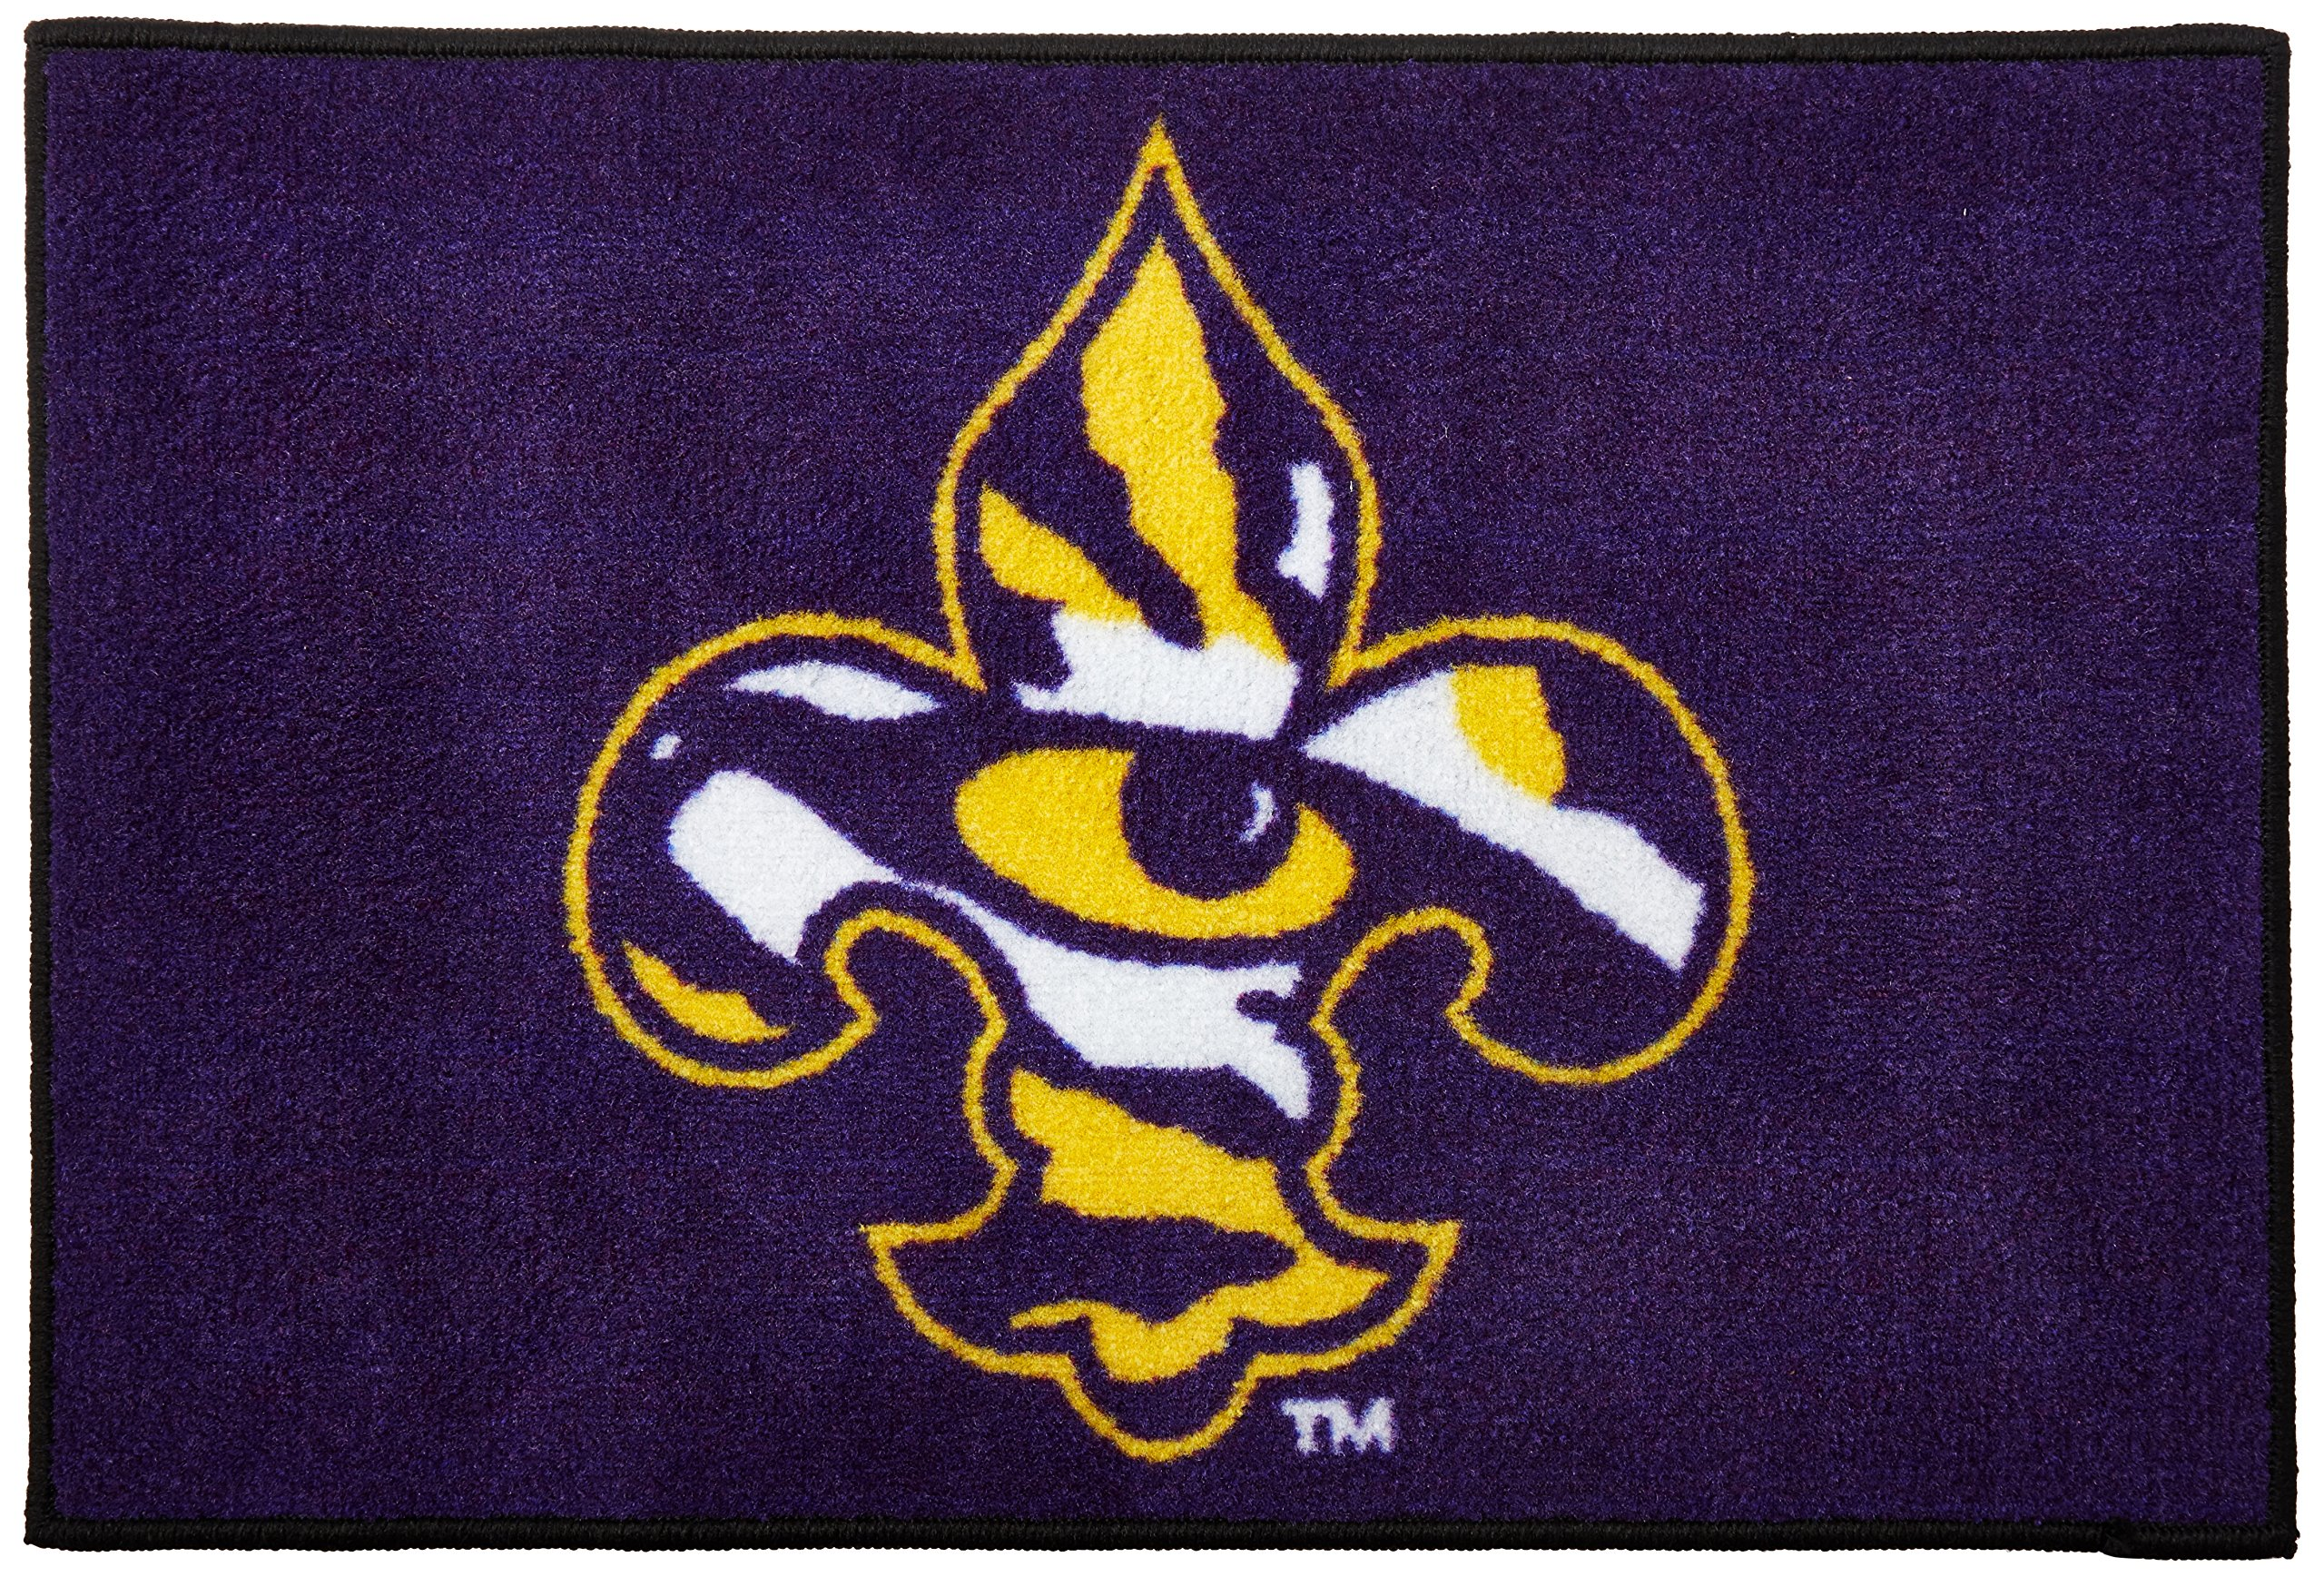 Fanmats LSU Tigers Metal Chrome License Plate Frame Delivery 2-4 Days